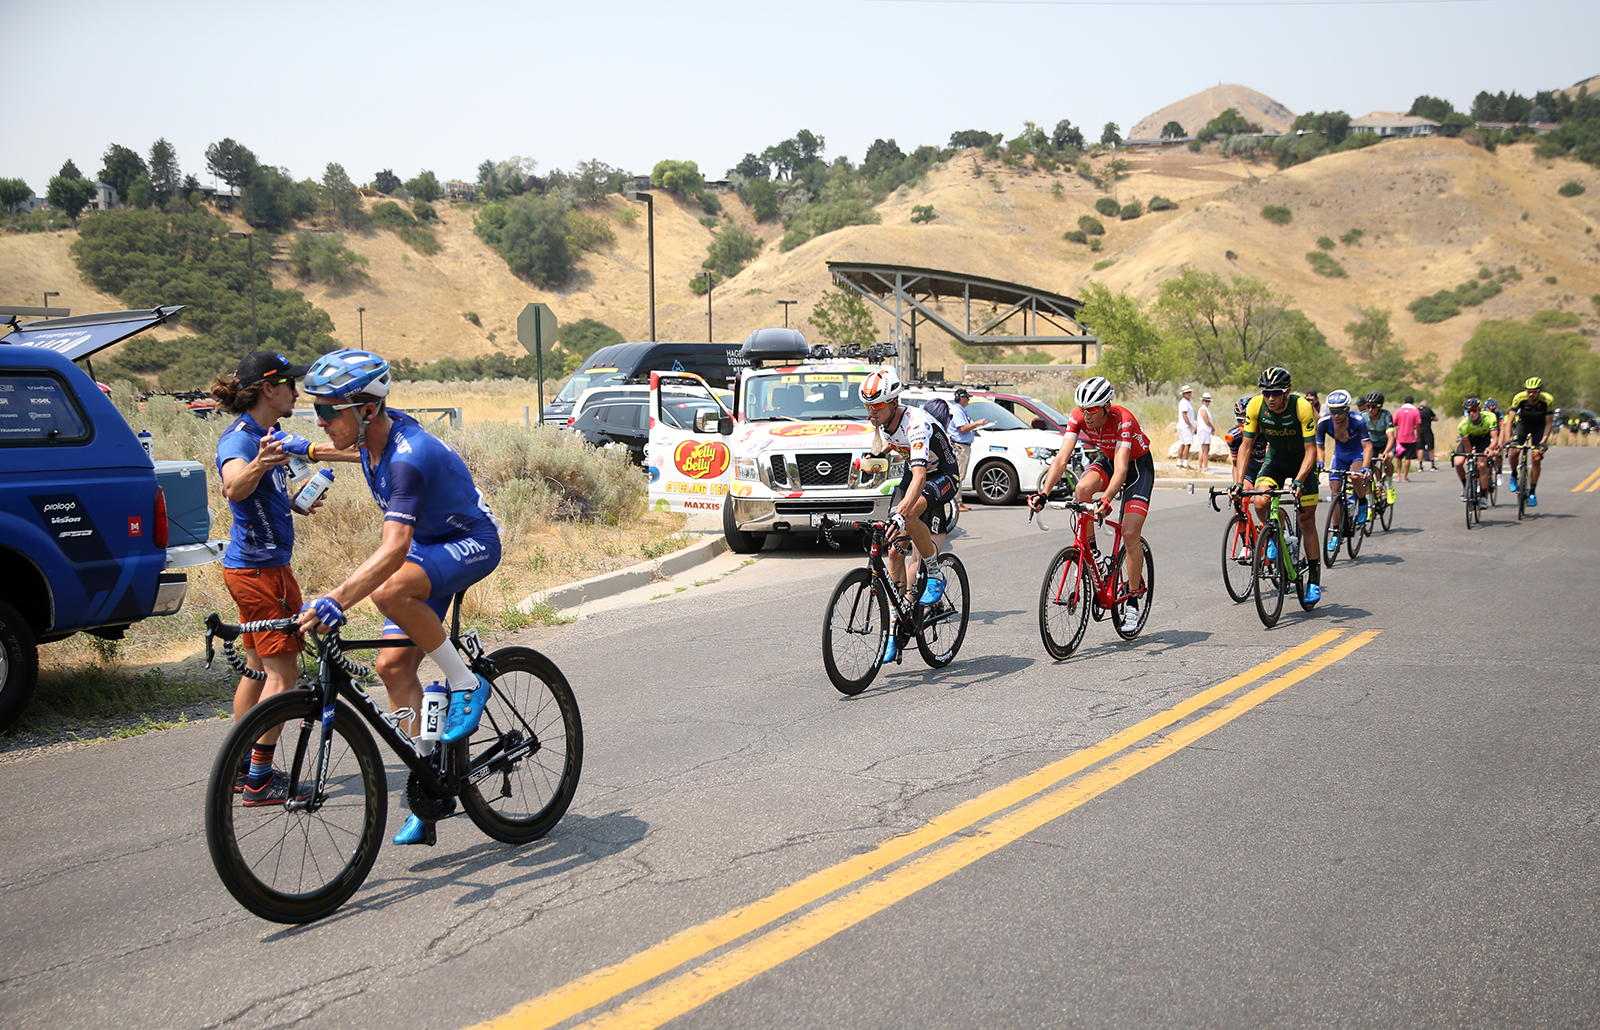 Feed zone. 2018 Tour of Utah Stage 4, August 8, 2018, Salt Lake City, Utah. Photo by Cathy Fegan-Kim, cottonsoxphotography.net